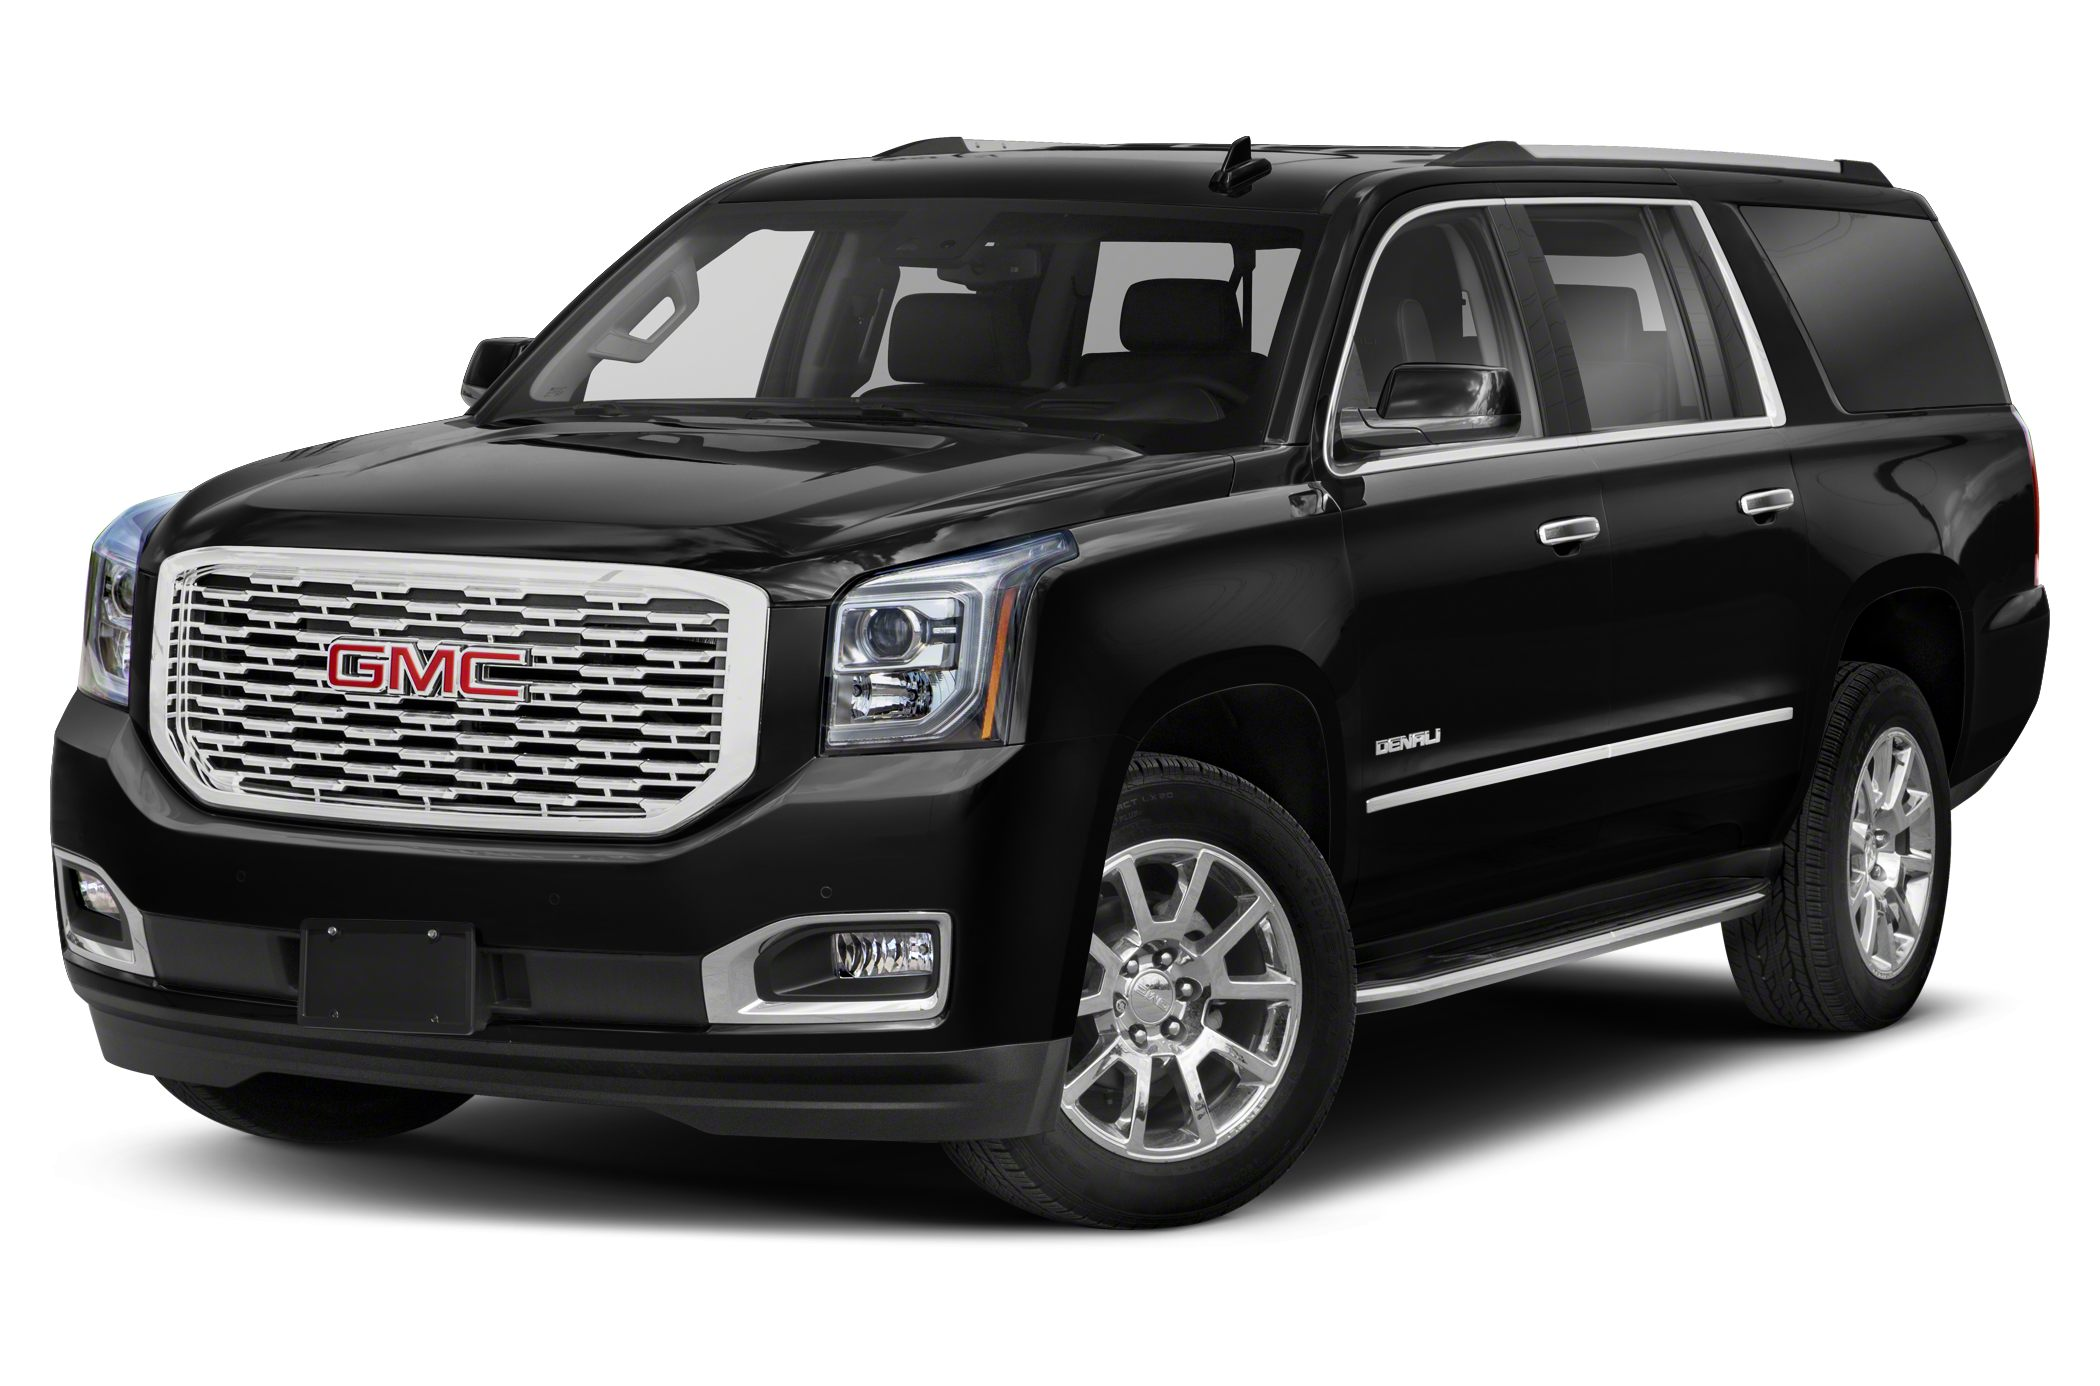 2020 Gmc Yukon Xl Denali 4x4 Specs And Prices